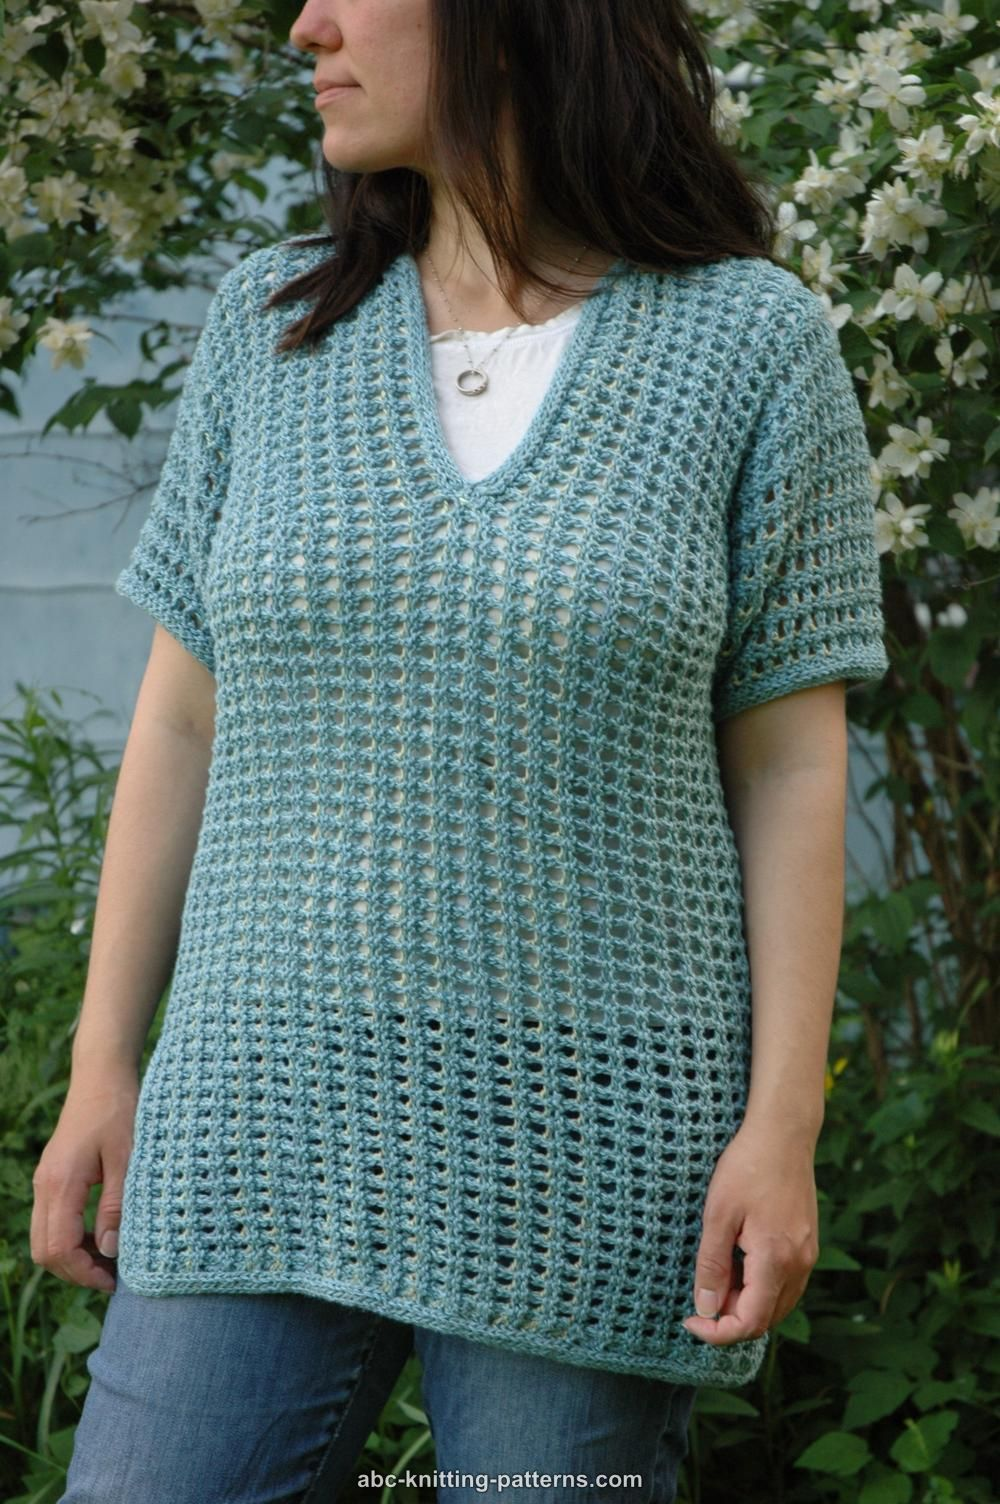 3f0ede53d79a30 ABC Knitting Patterns - Subtle Mesh Summer Sweater